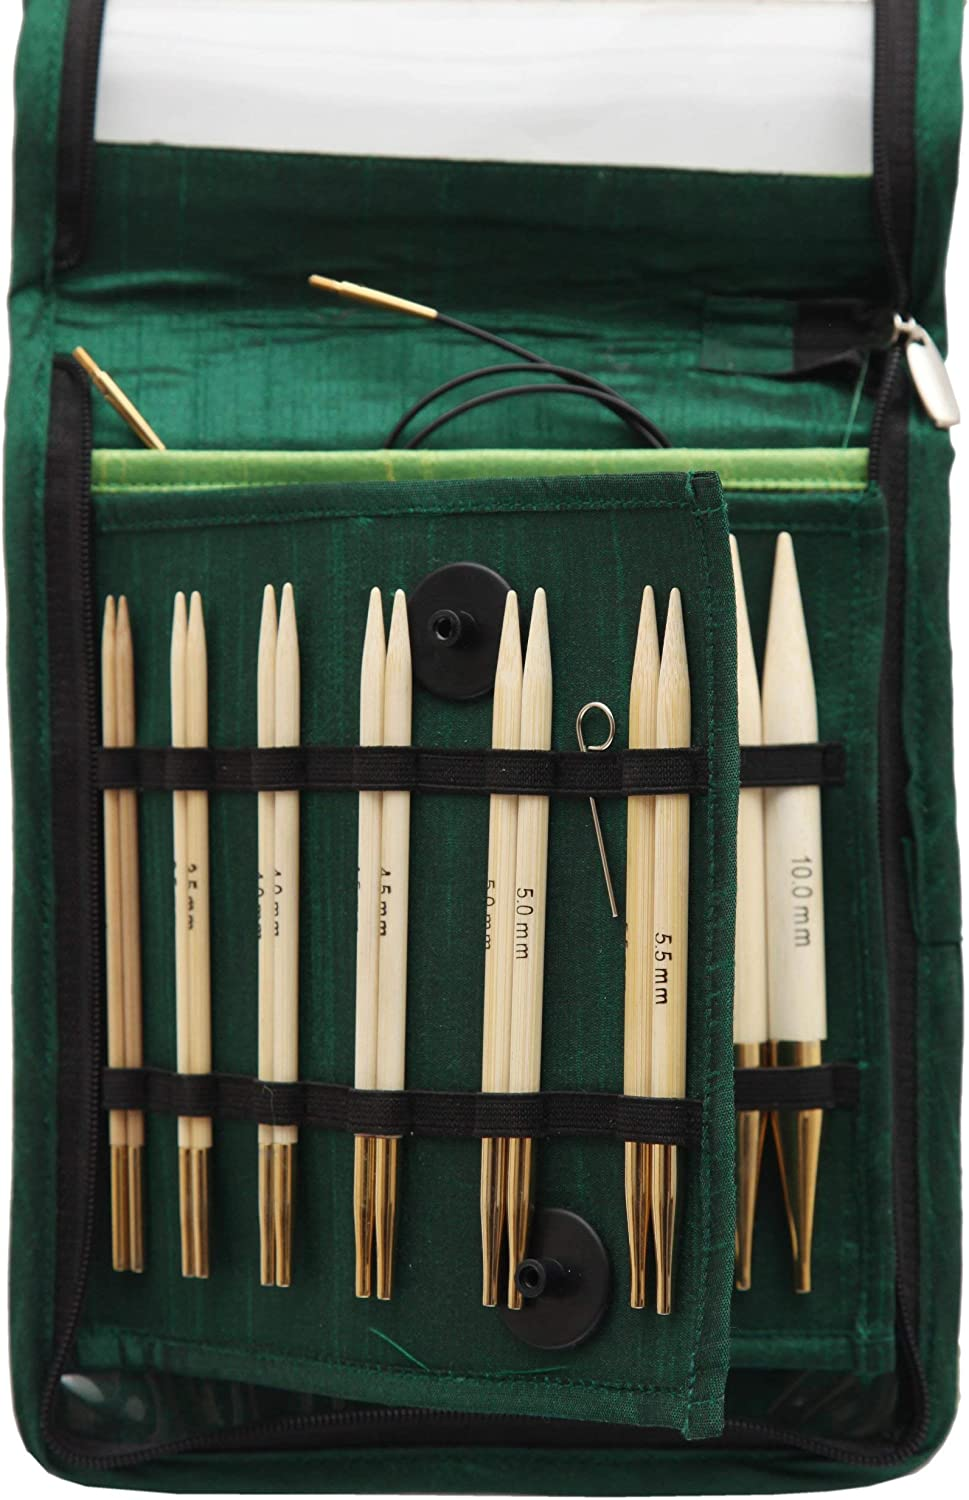 KNITPRO Deluxe 22542 Bamboo Needle Set Needle Tips for Knitting in the Round